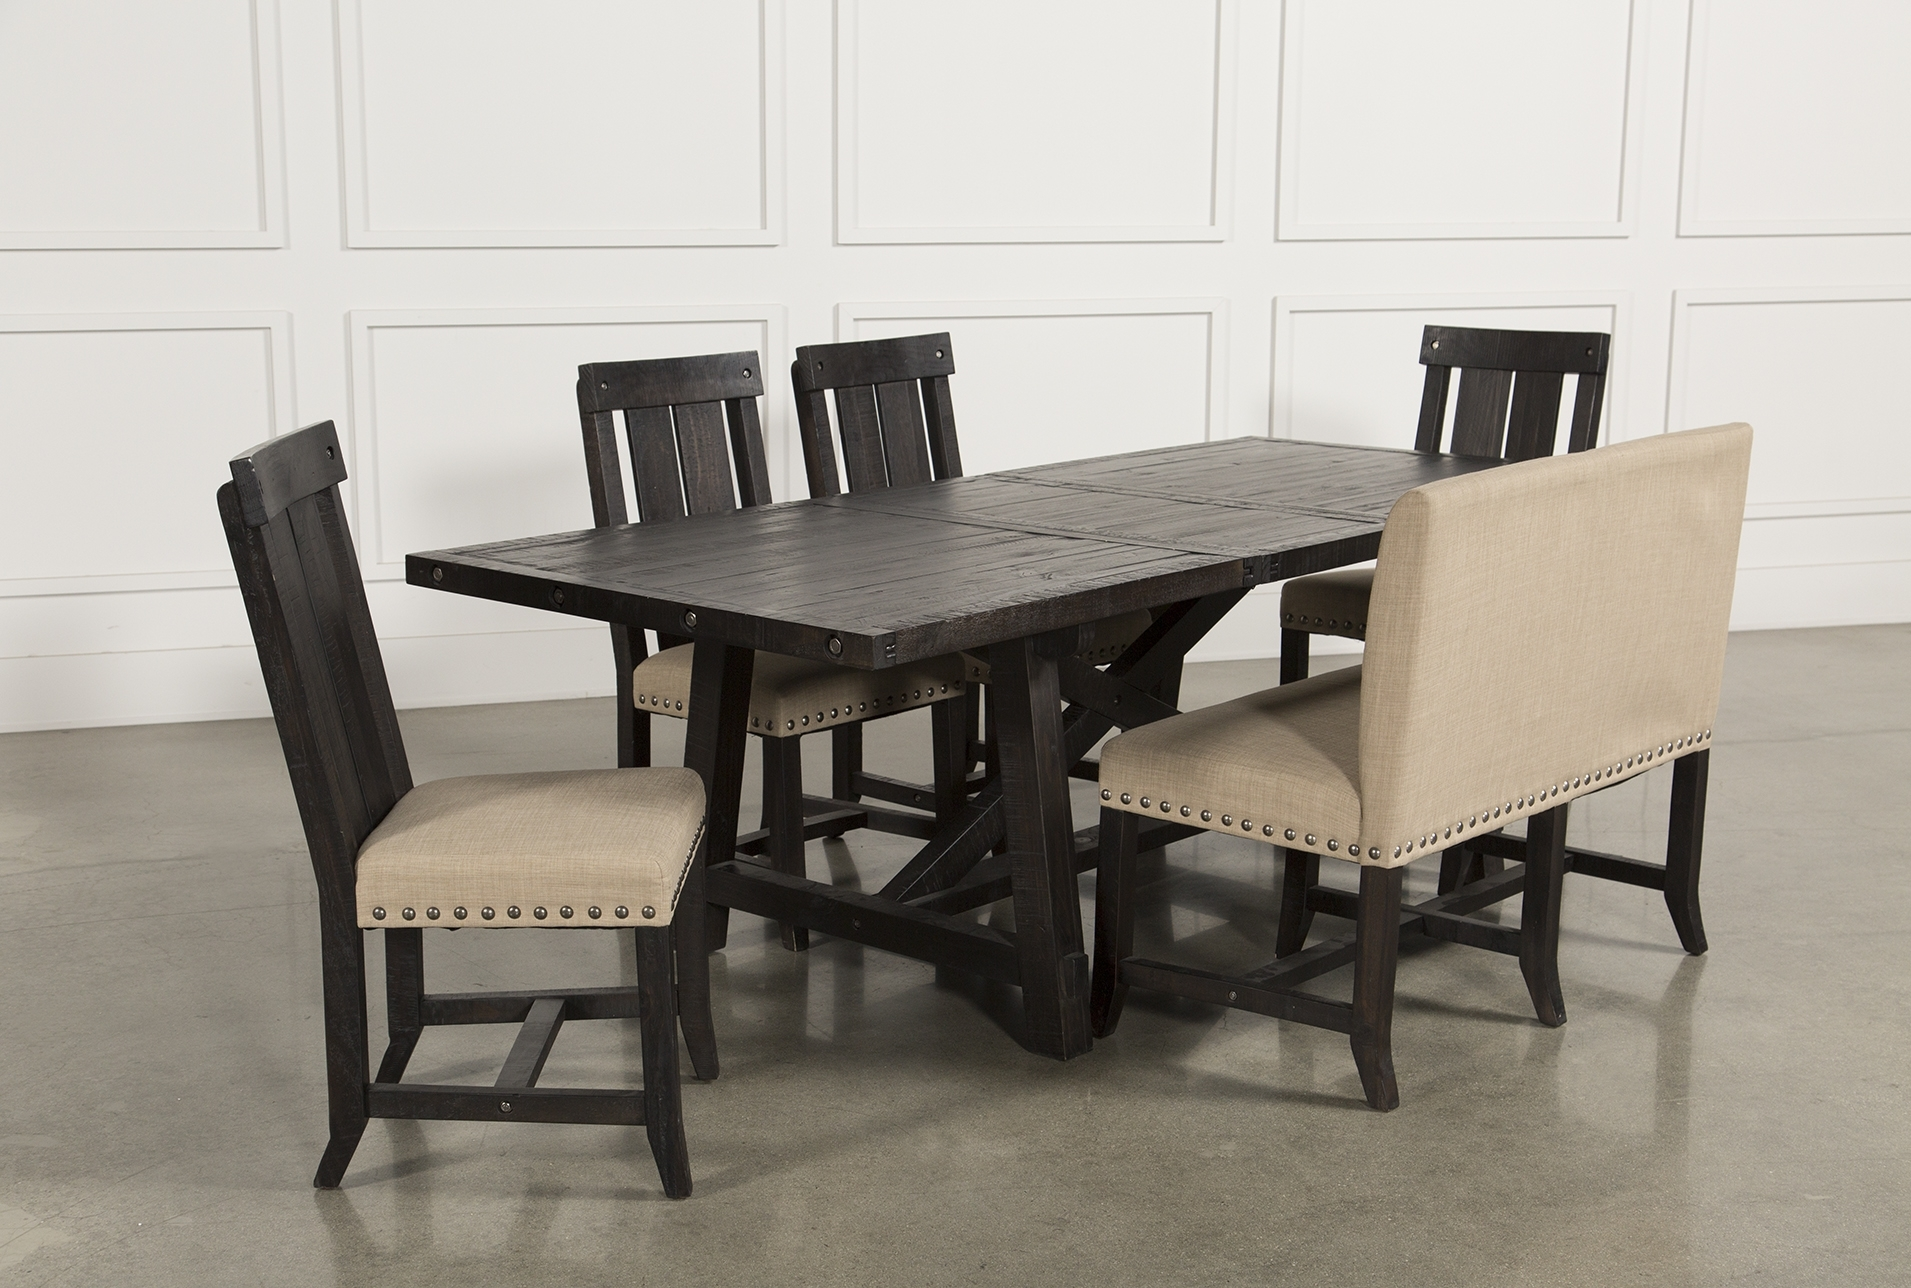 Jaxon 6 Piece Rectangle Dining Set W/bench & Wood Chairs | Products Within Most Recently Released Jaxon 7 Piece Rectangle Dining Sets With Wood Chairs (Photo 1 of 20)